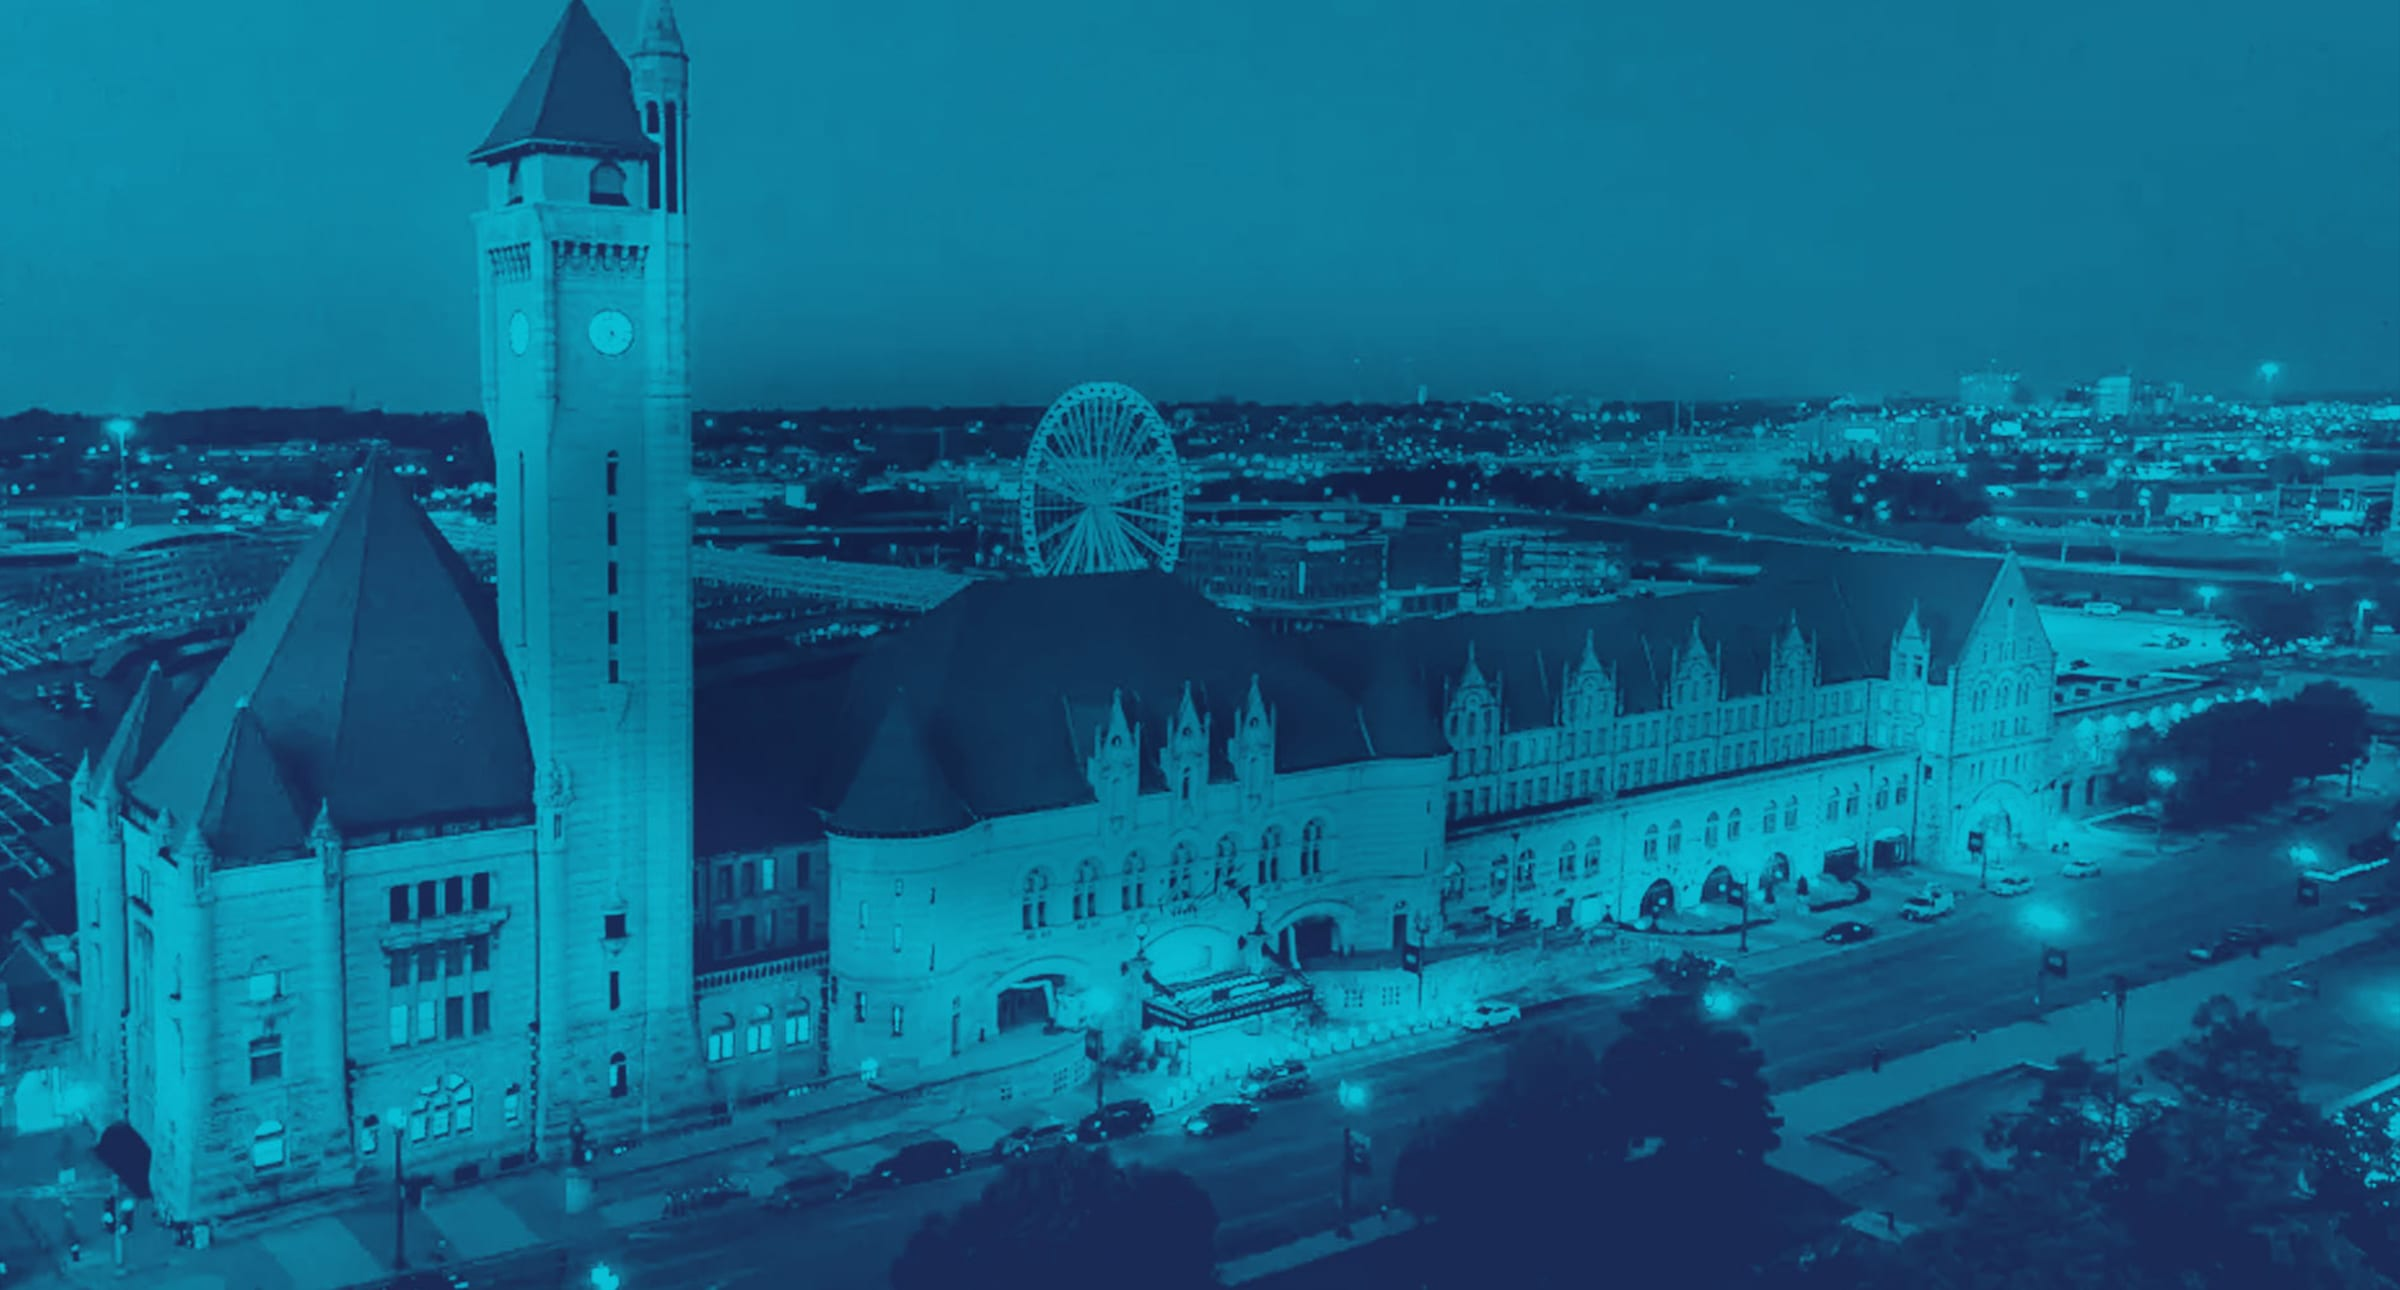 Blue duotone drone image of the St. Louis Union Station